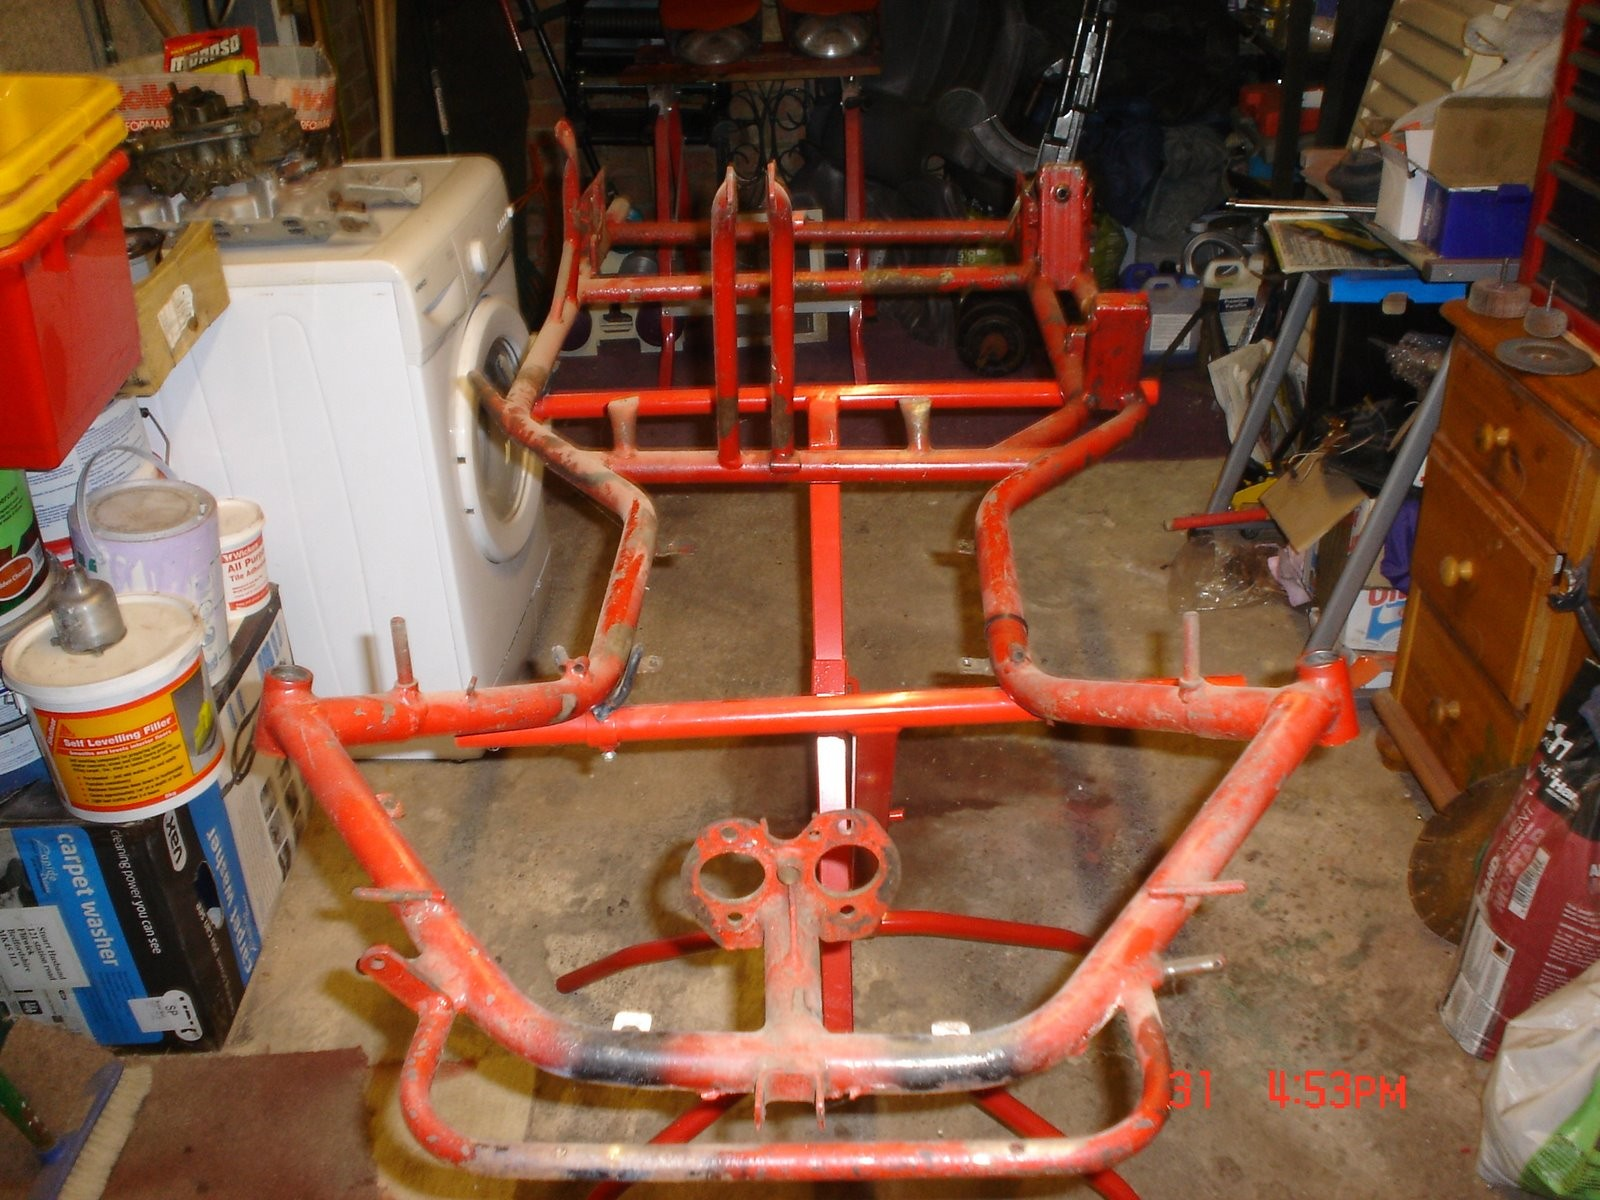 Chassis stripped of all parts